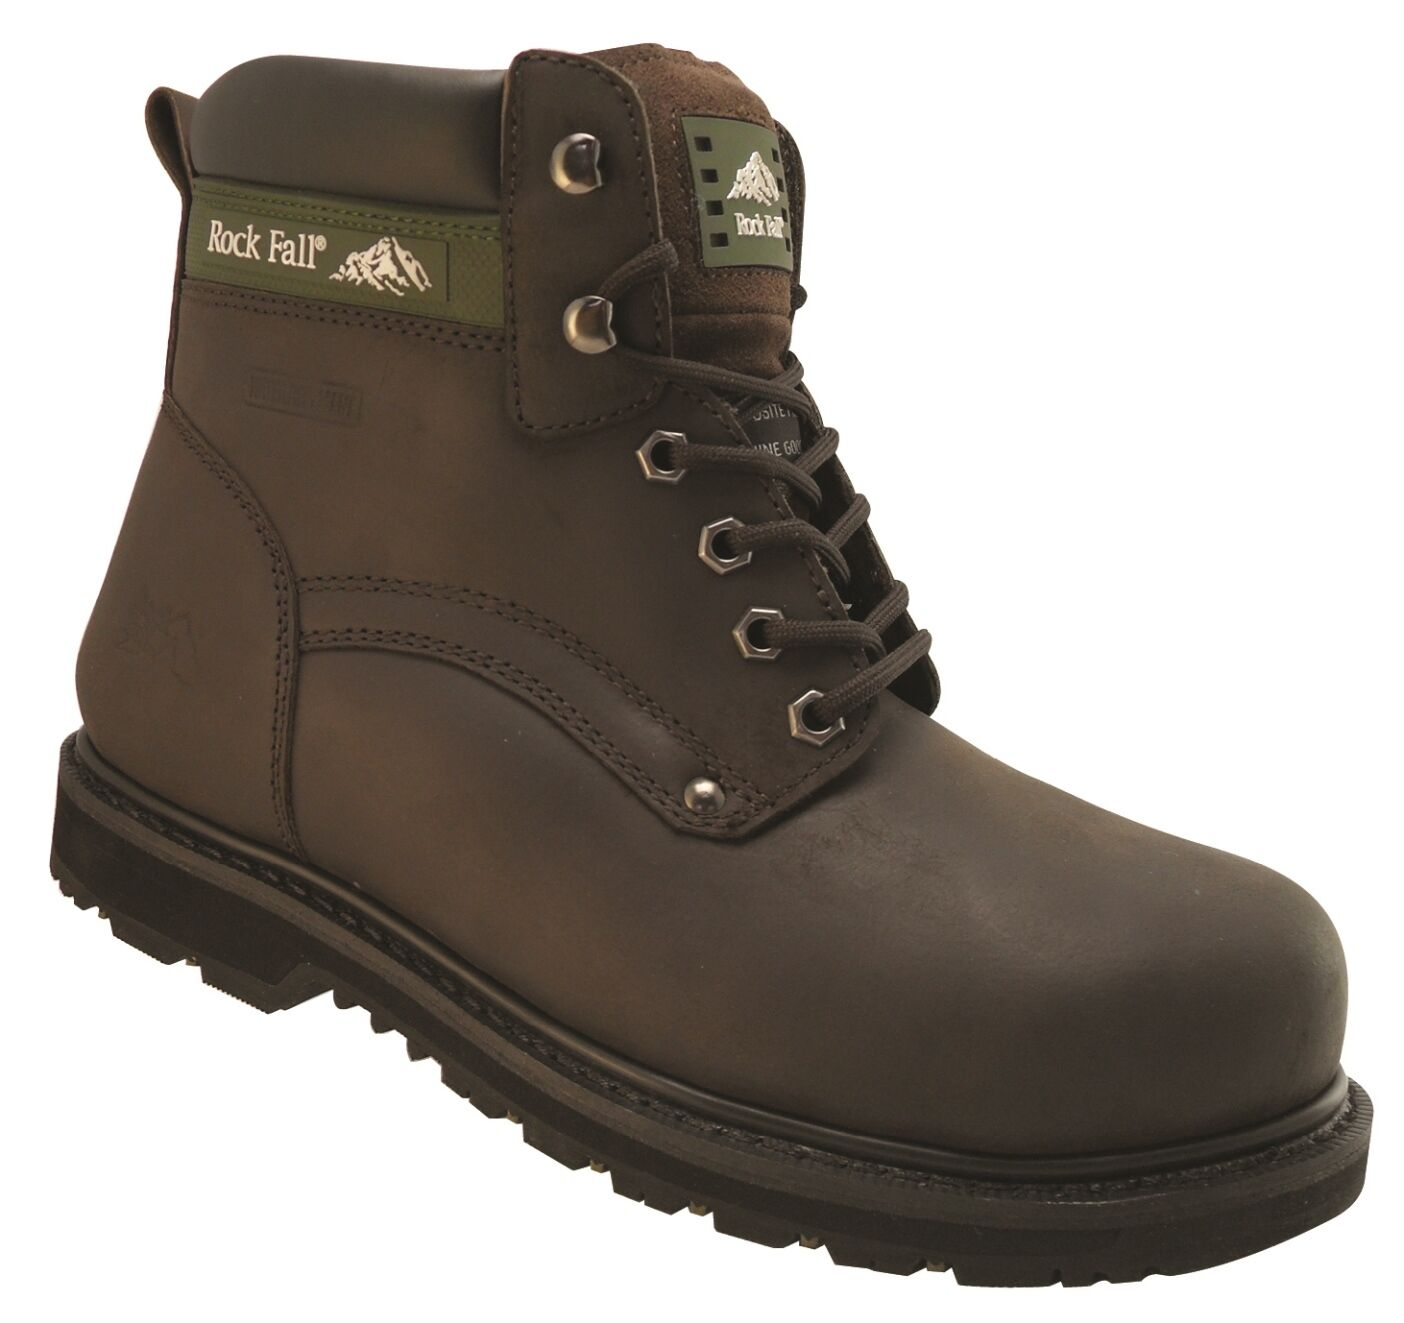 Rock Fall Quartz Brown S3 HRO Steel Toe Cap Safety Boots Work Boots Footwear PPE